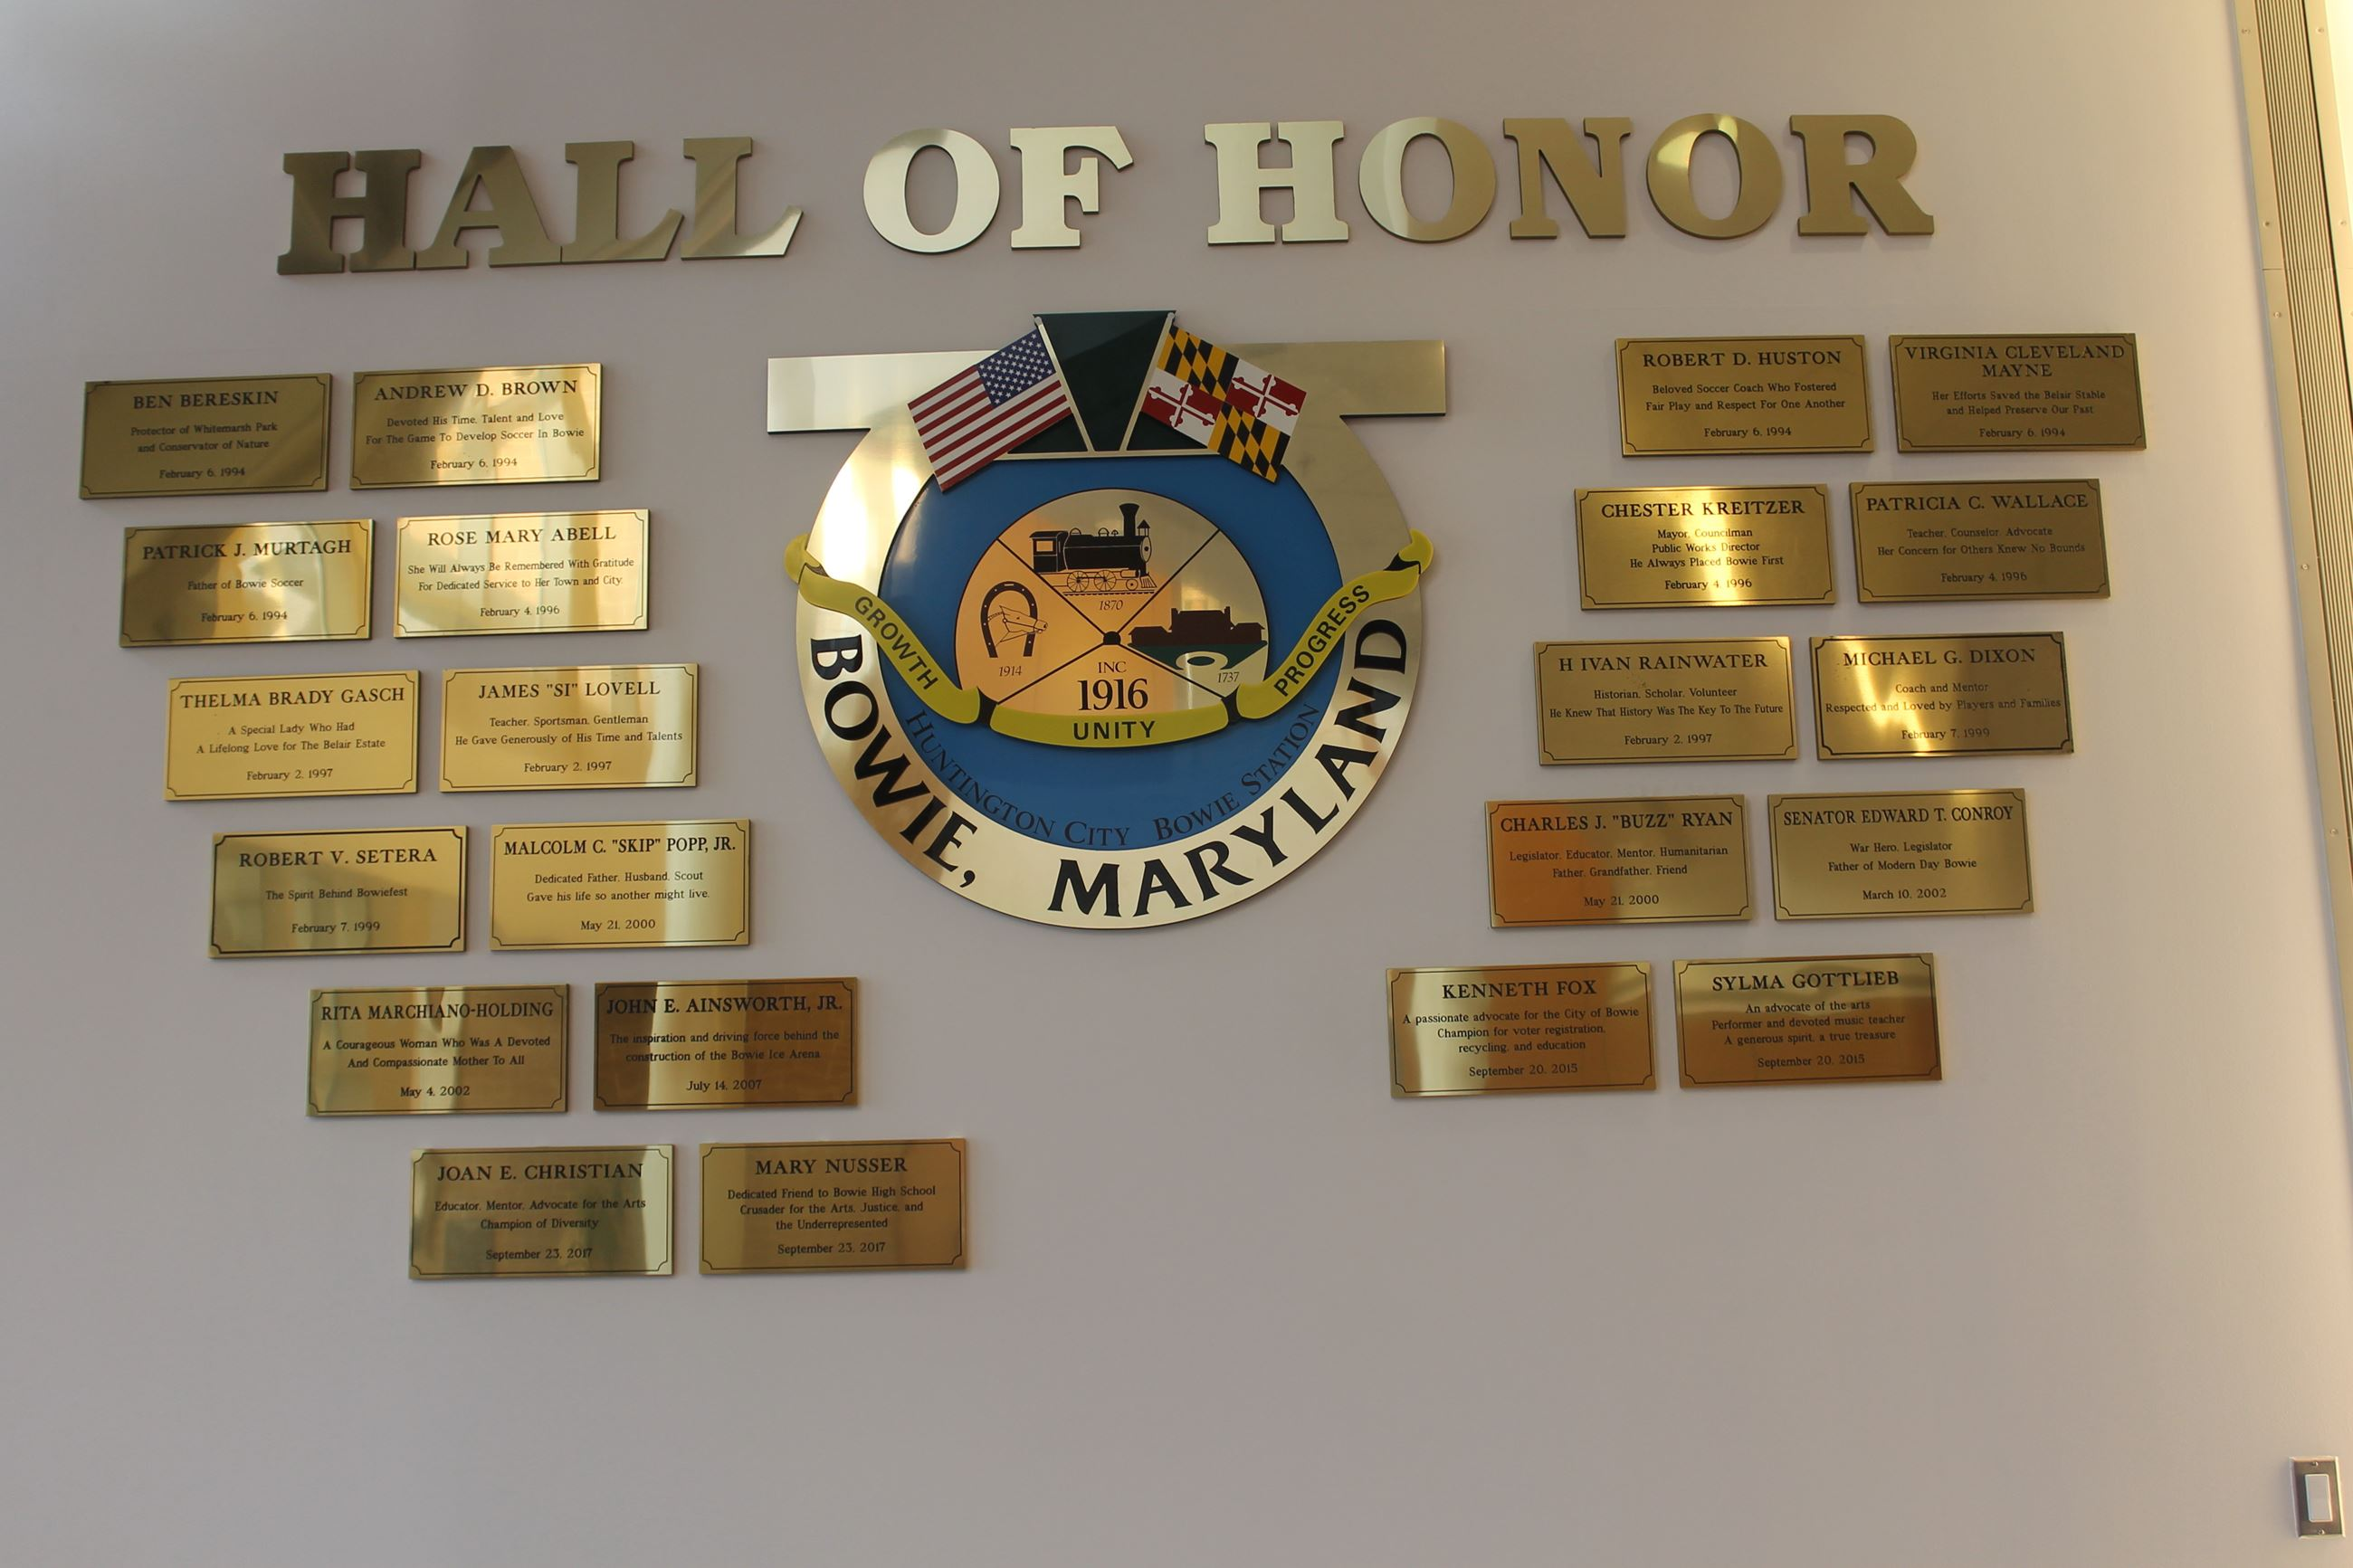 Hall of Honor 2017